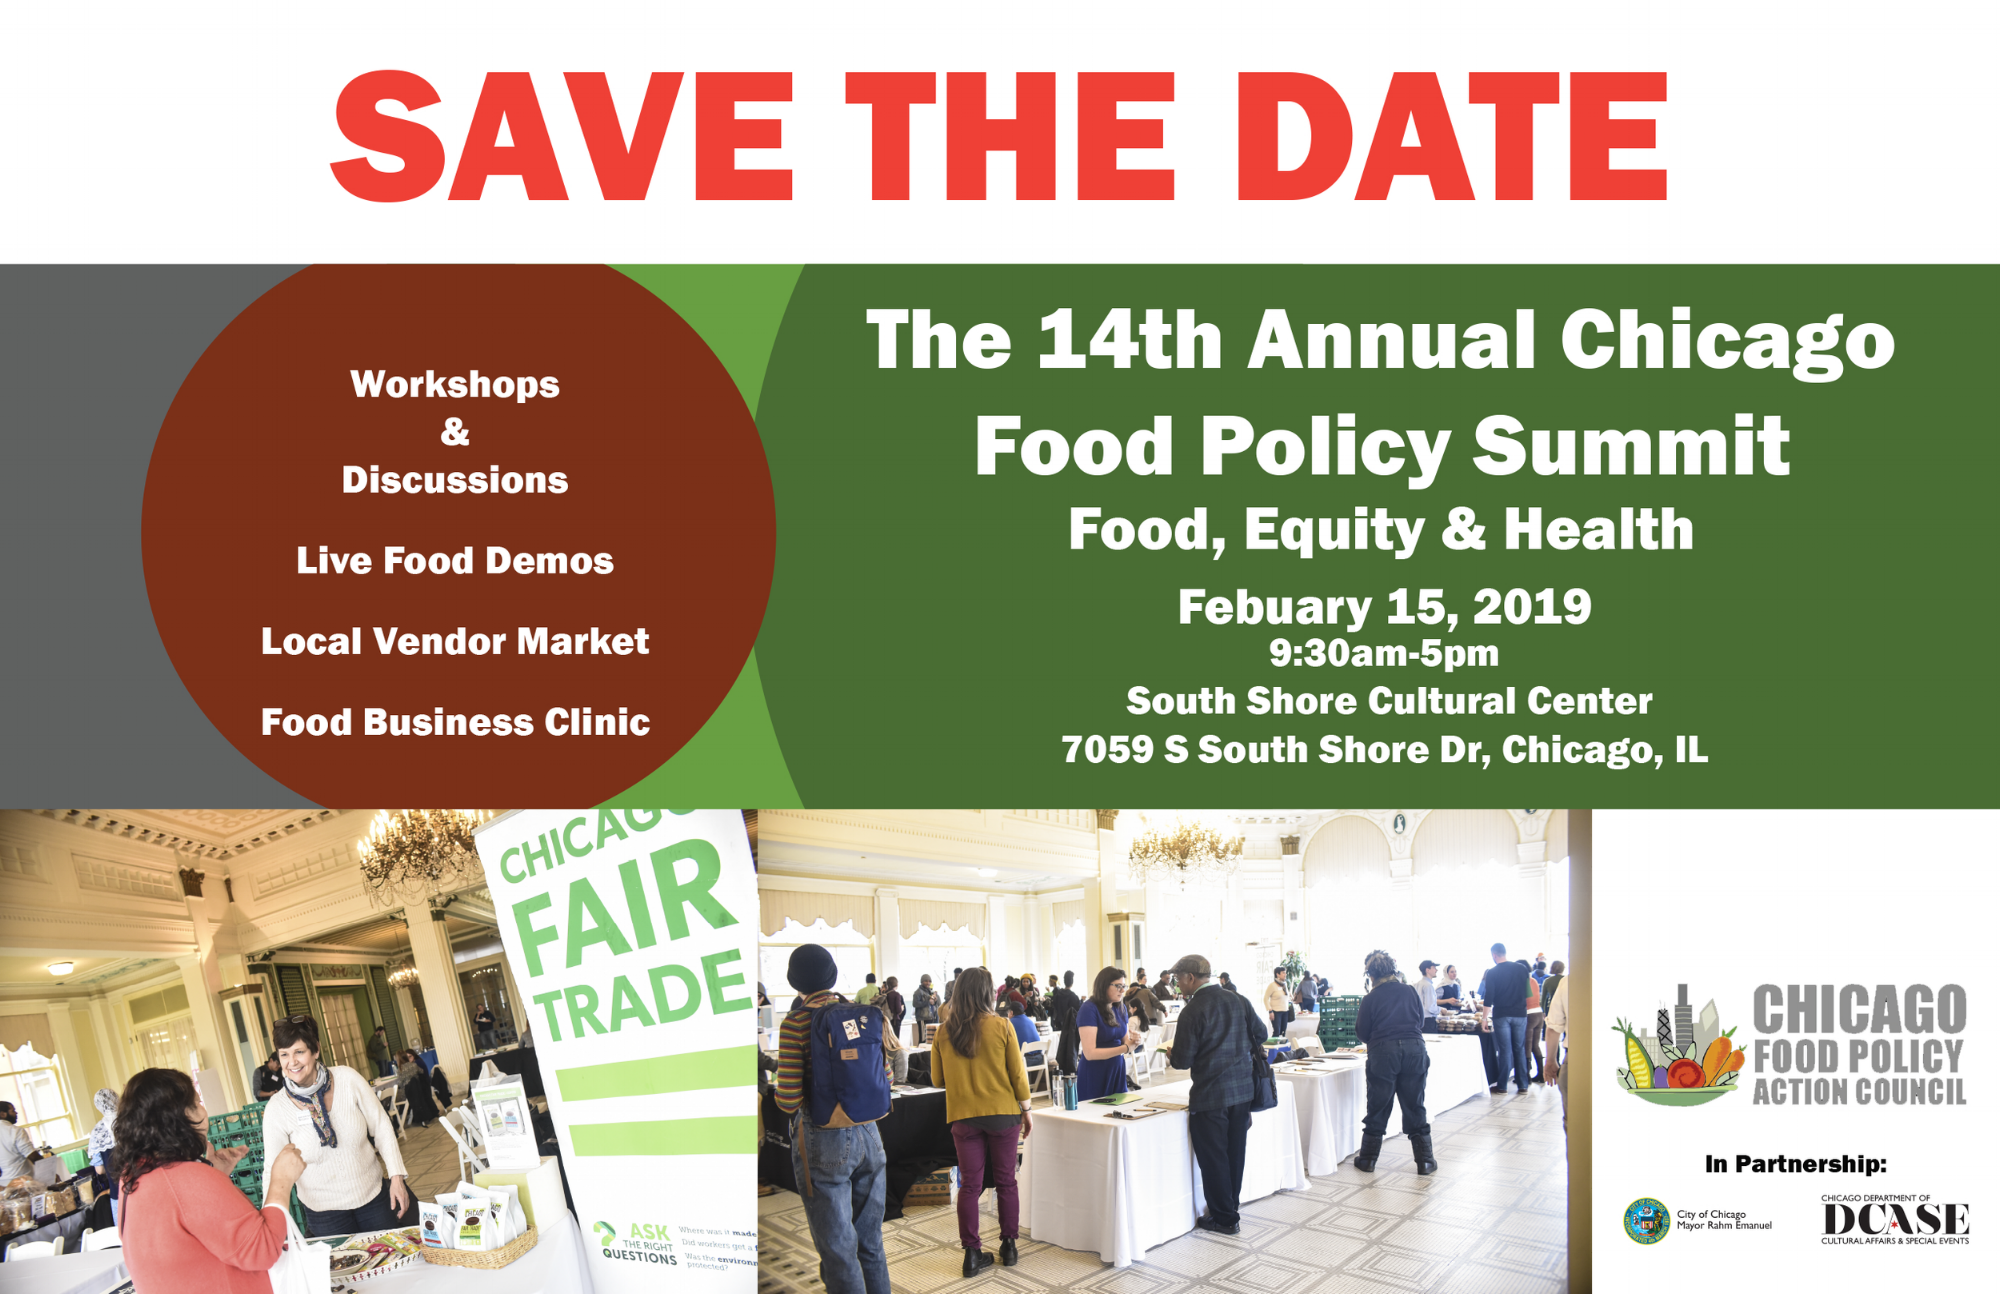 The 14th Annual Chicago Food Policy Summit will be on February 15, 2019 at the South Shore Cultural Center.